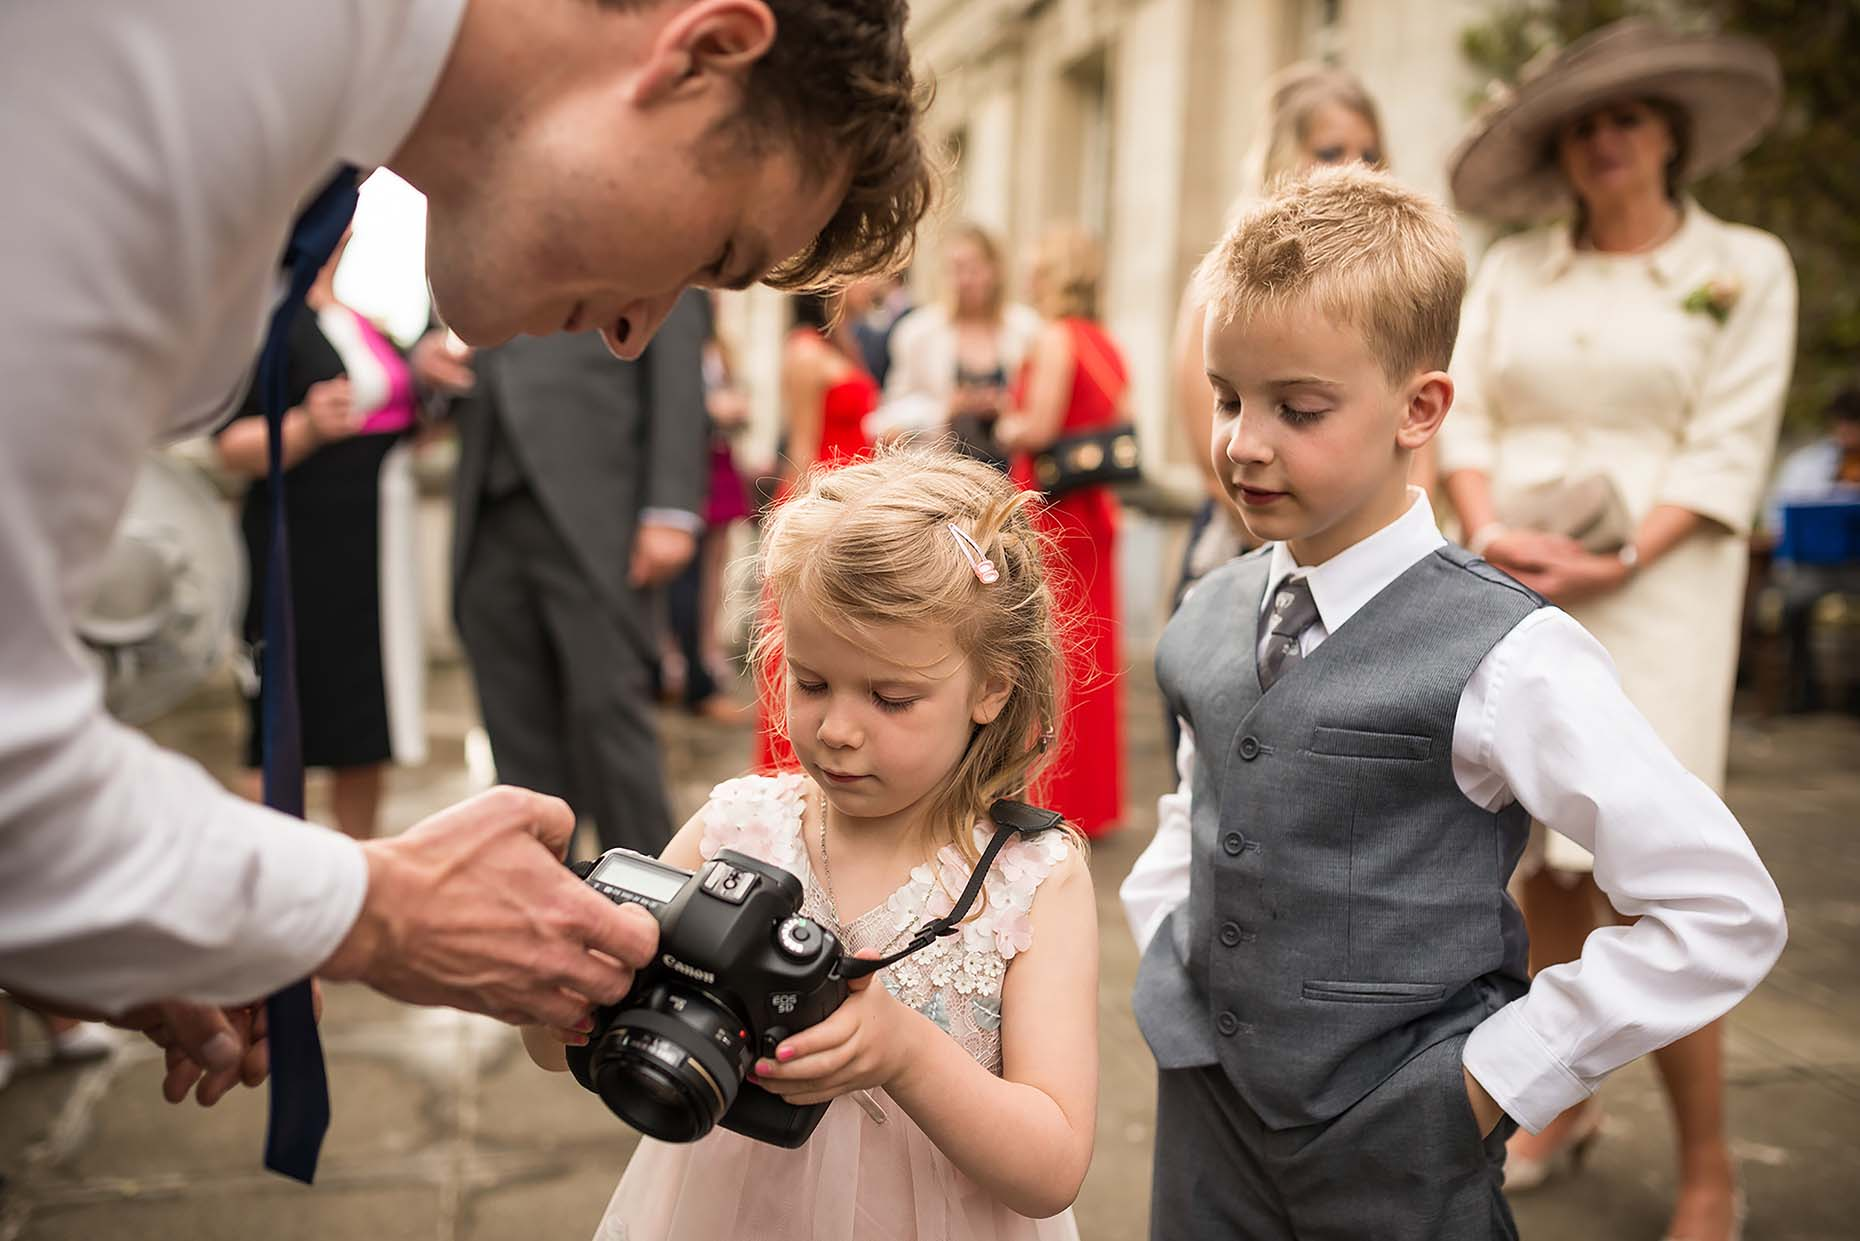 wedding-reception-child-guests-camera-dslr-canon-london-07